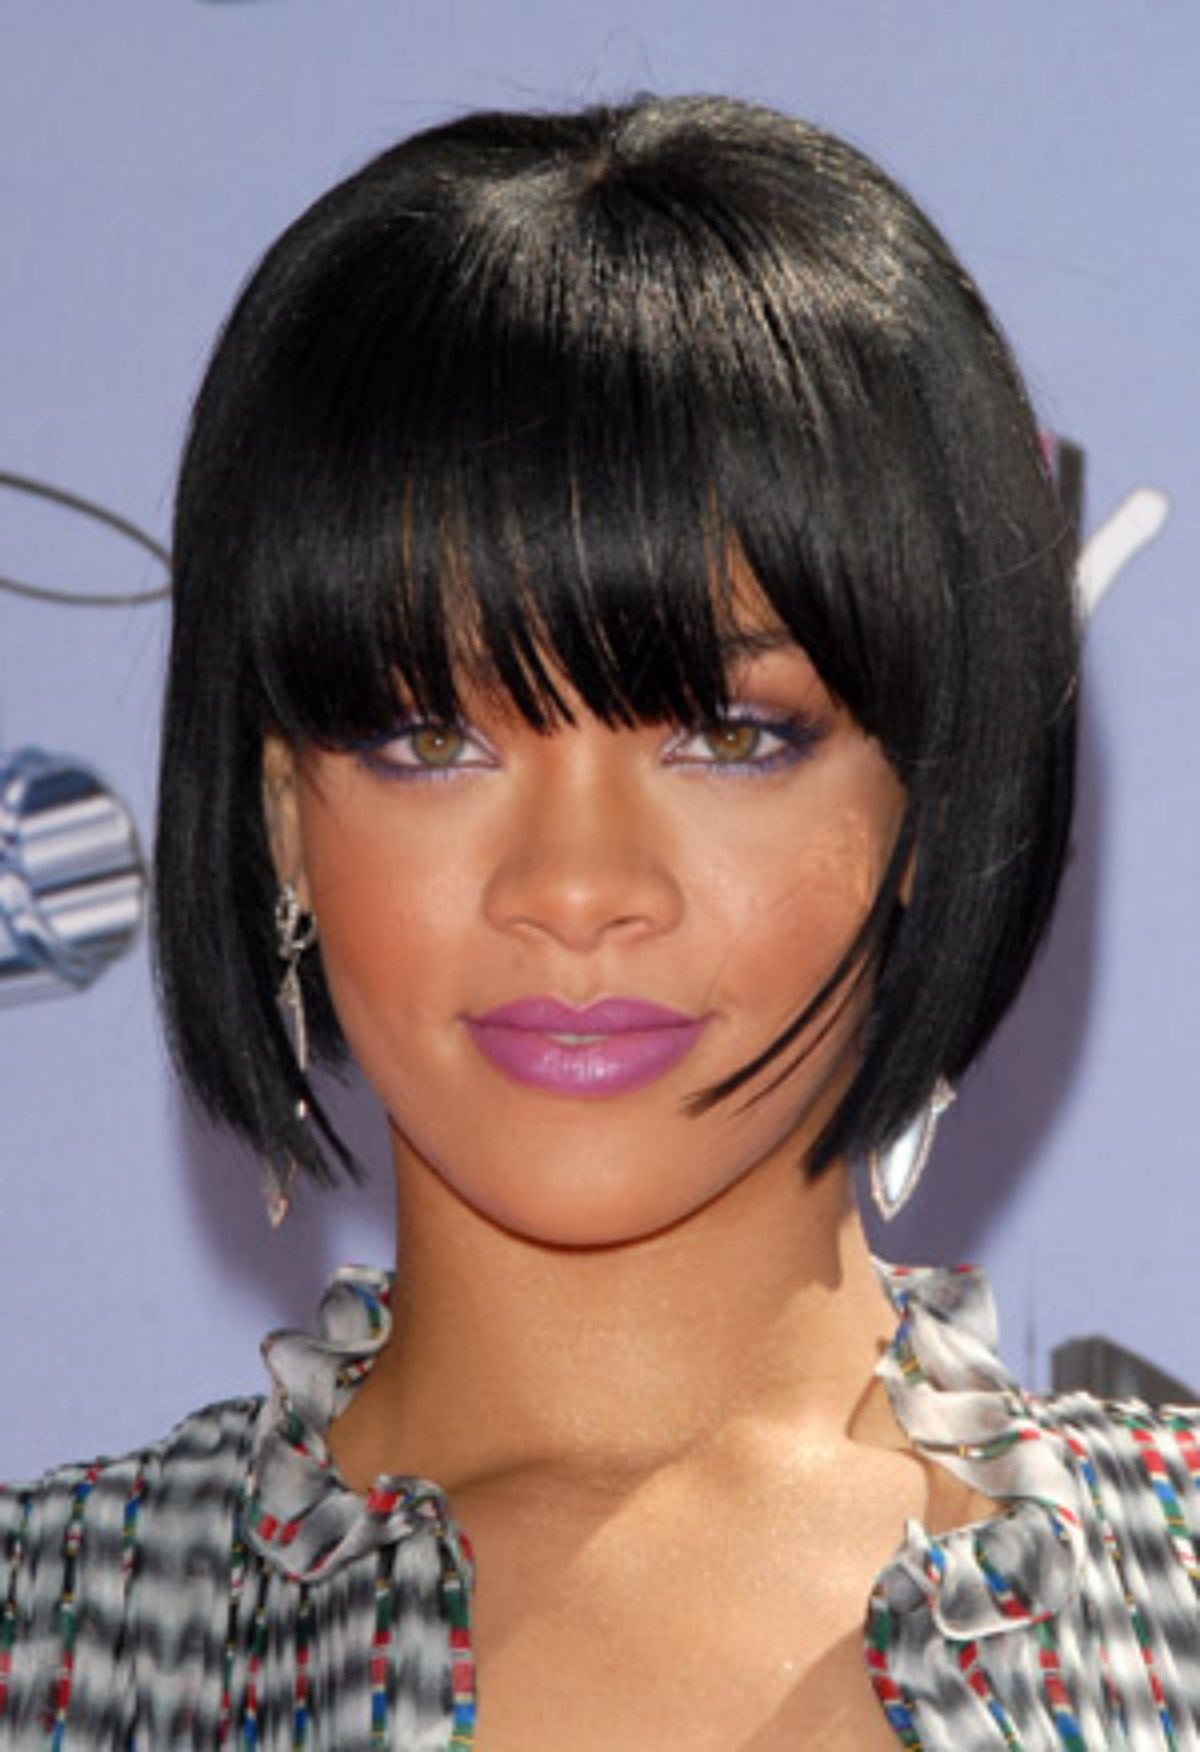 Fashion of Short Haircuts for Black Women